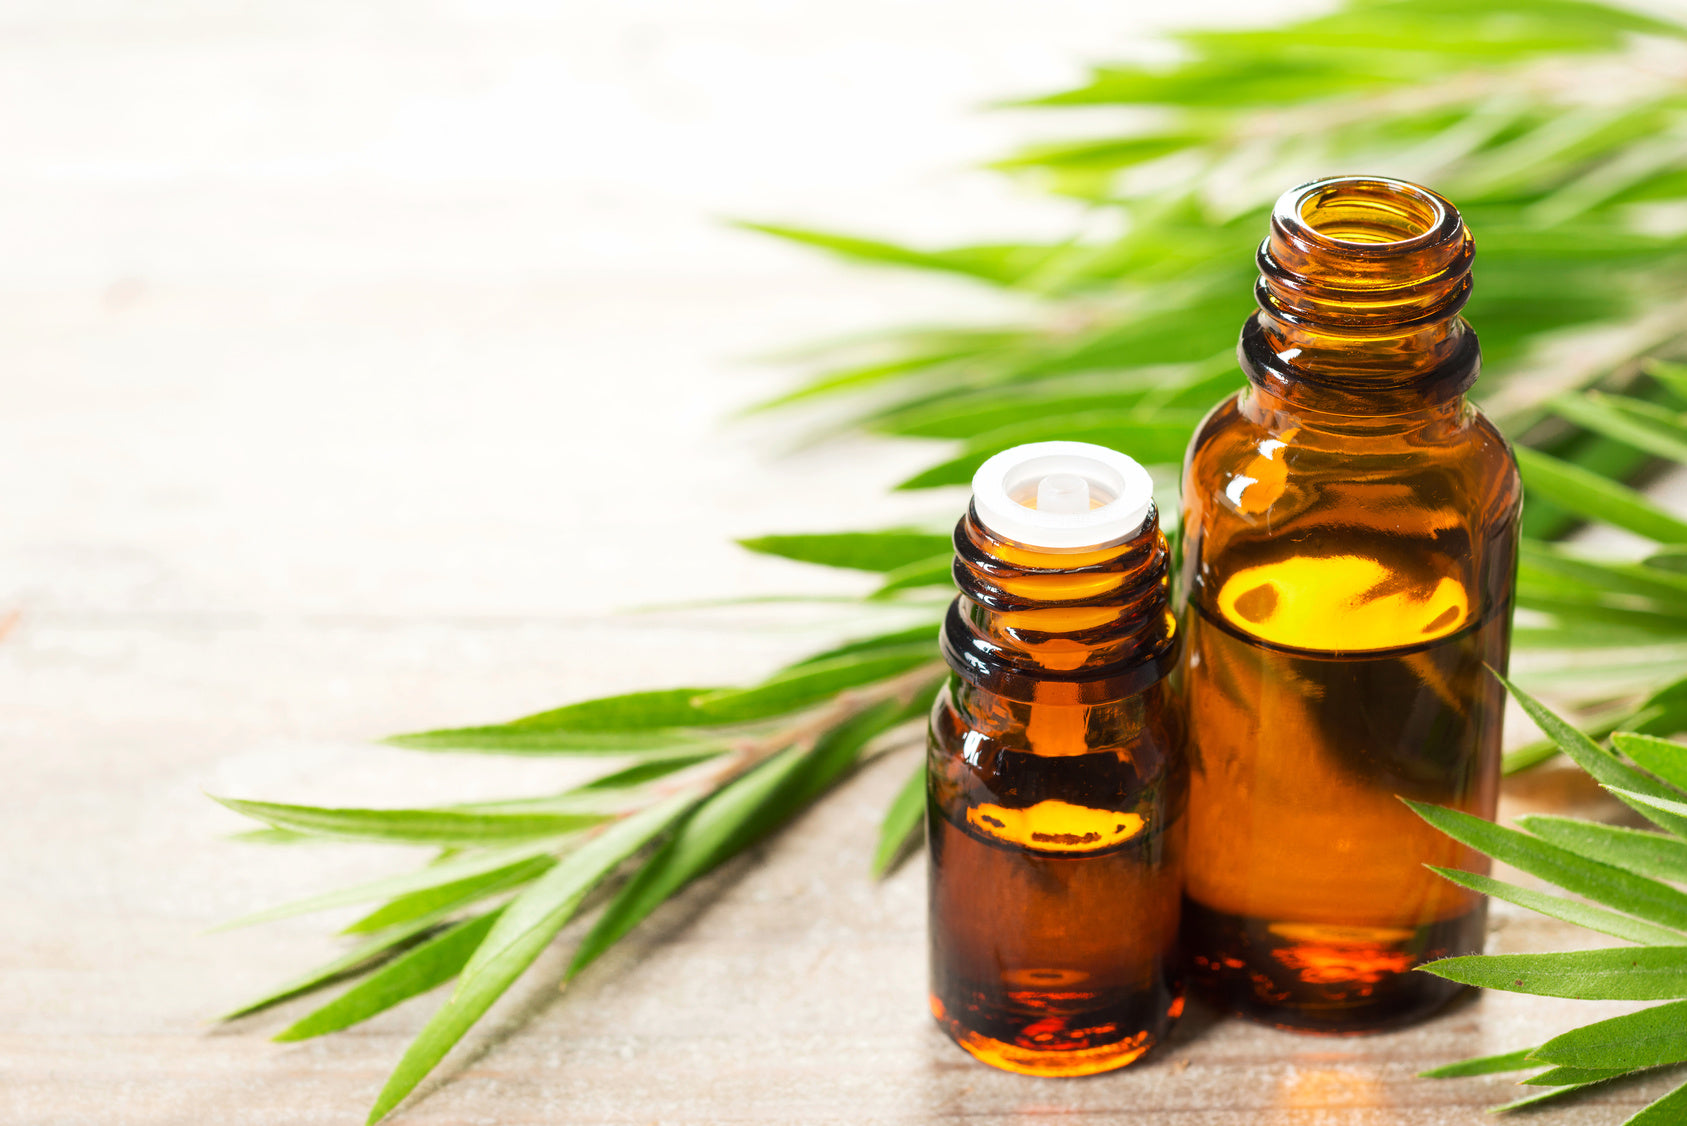 Discussion on this topic: How Effective Is Tea Tree Oil In , how-effective-is-tea-tree-oil-in/